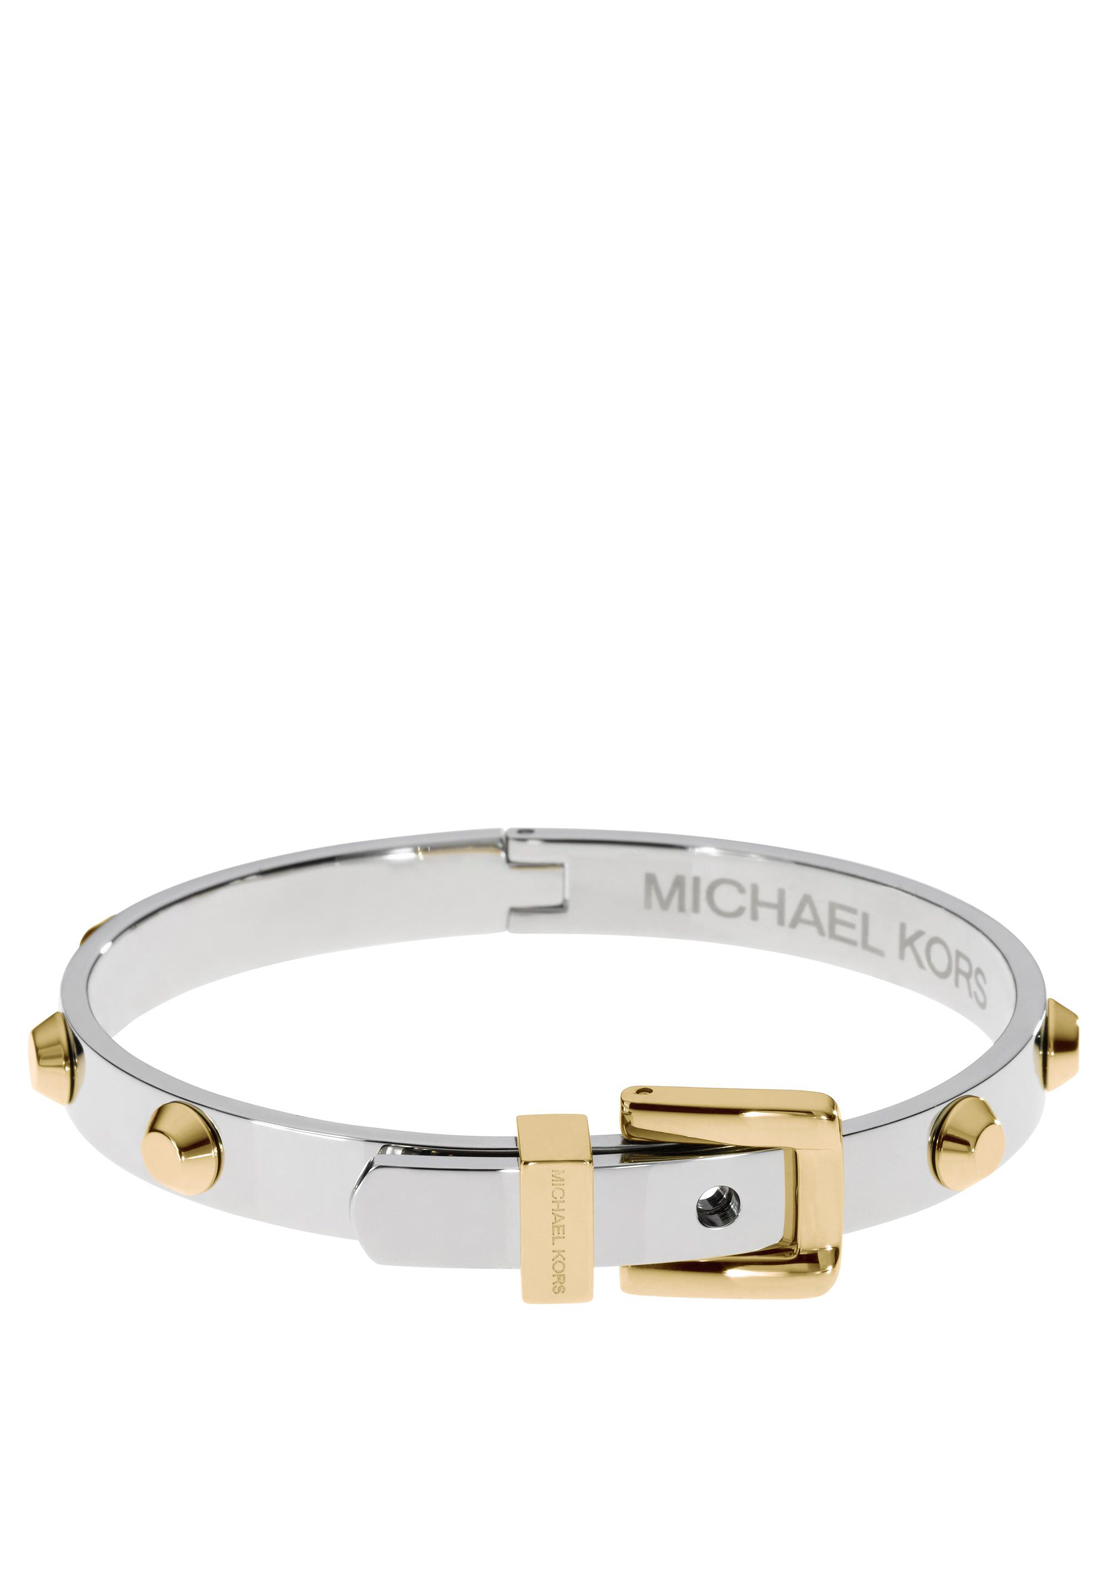 Michael Kors Womens Astor Stud Buckle Bangle, Silver